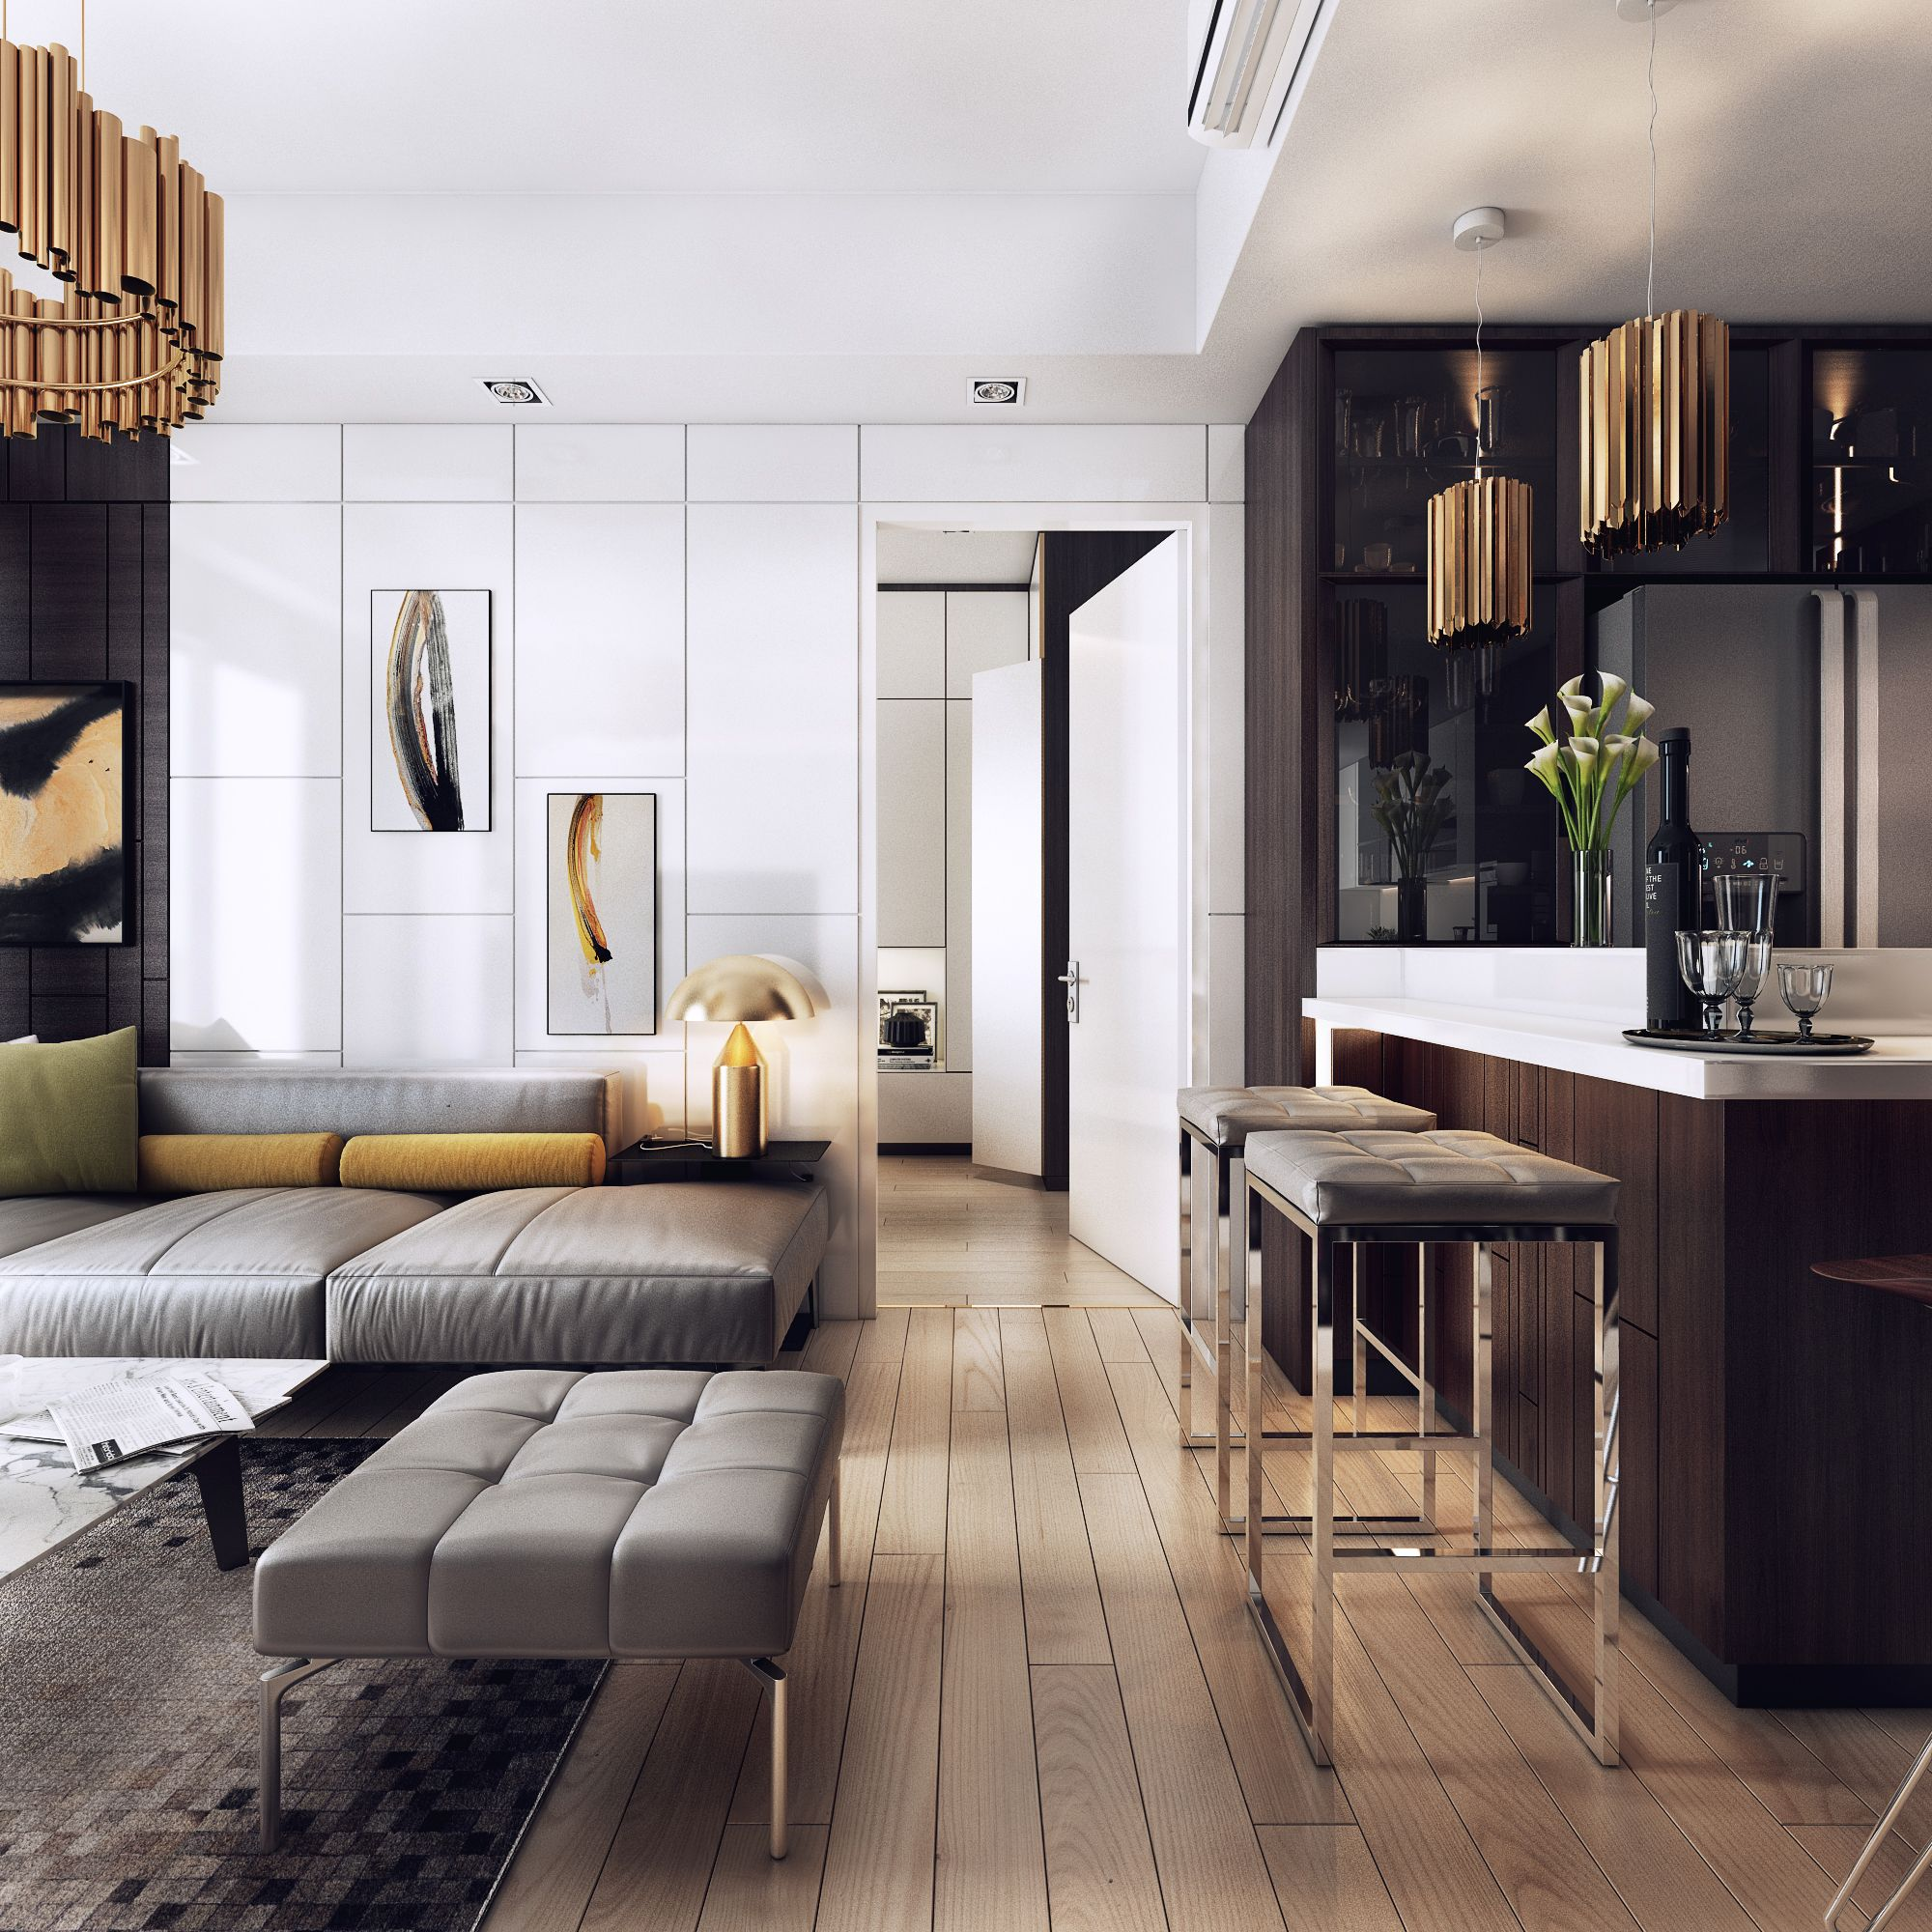 Interior of a Luxury Apartment 10 Ultra